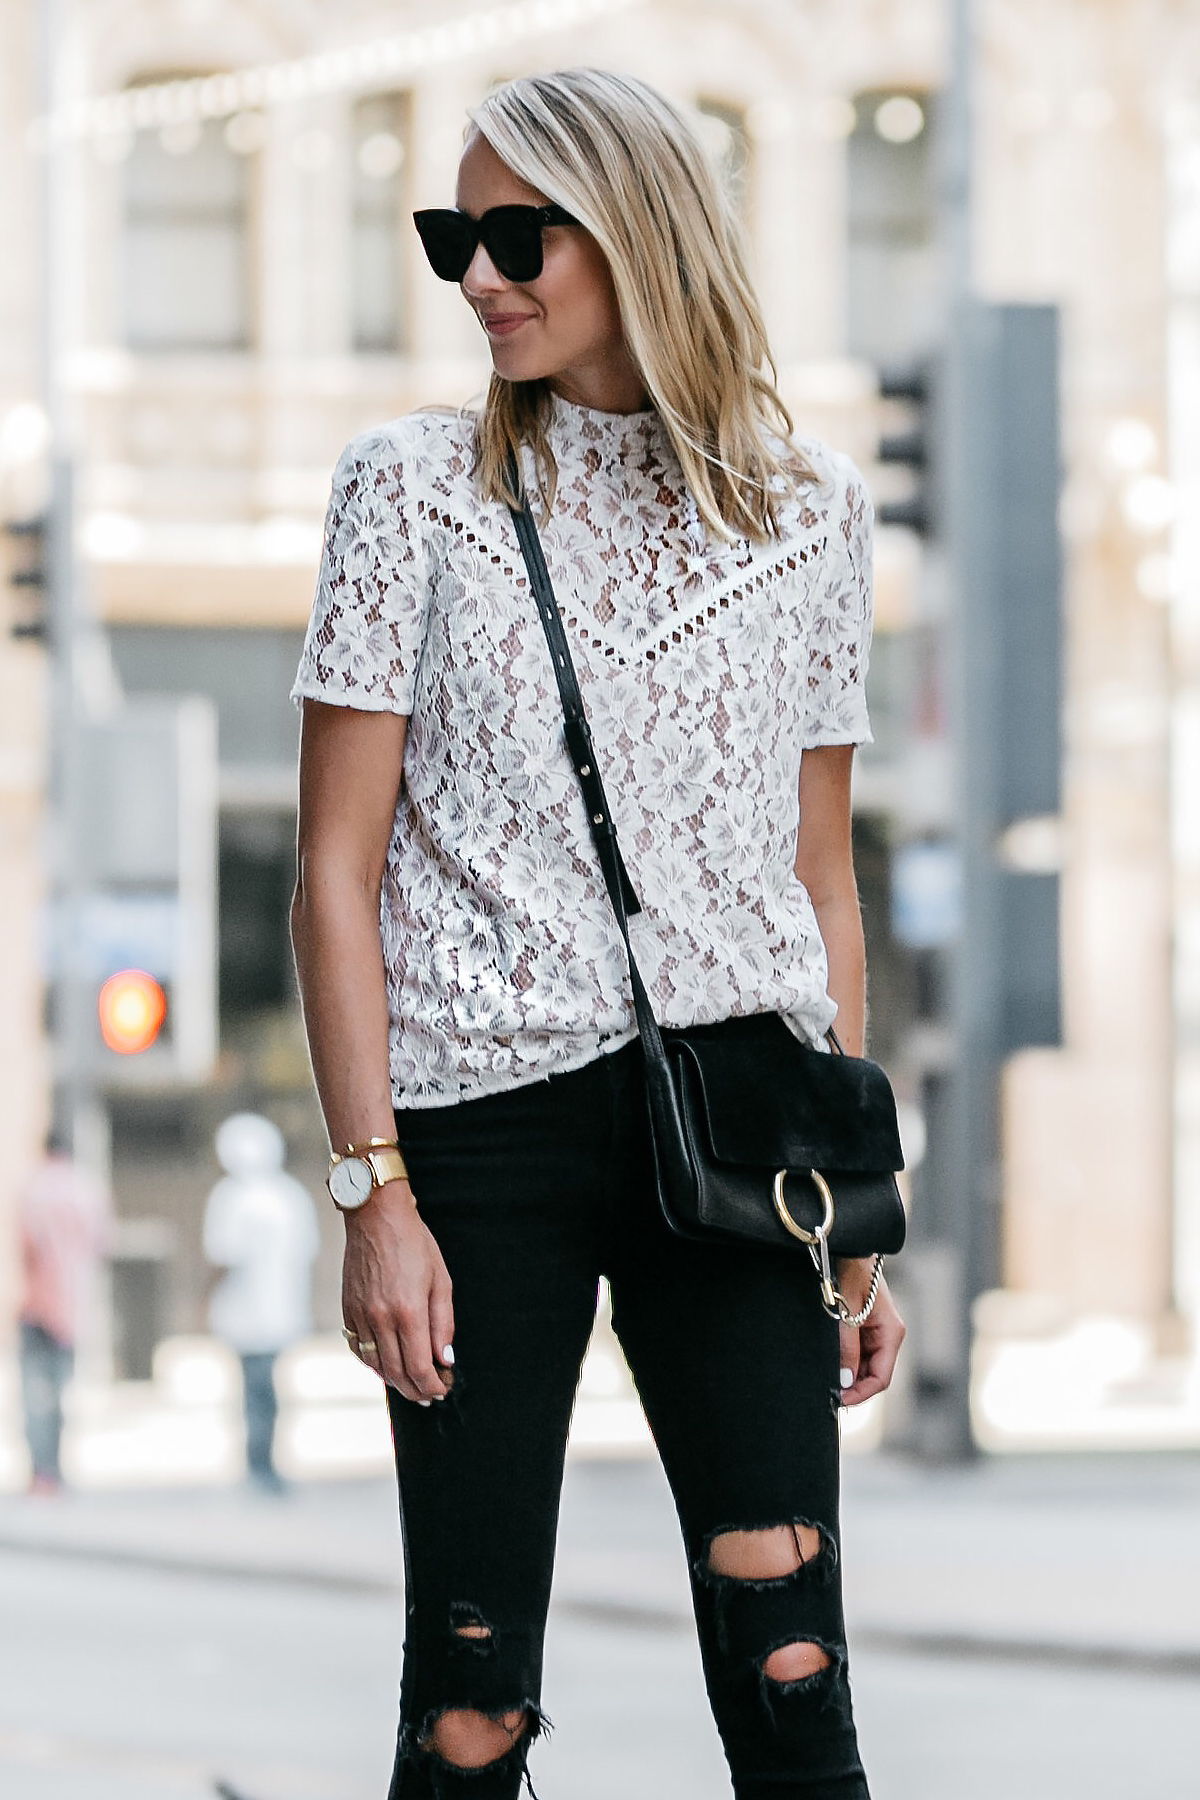 Blonde Woman Wearing Nordstrom Anniversary Sale White Lace Top Zara Black Ripped Skinny Jeans Outfit Chloe Faye Handbag Fashion Jackson Dallas Blogger Fashion Blogger